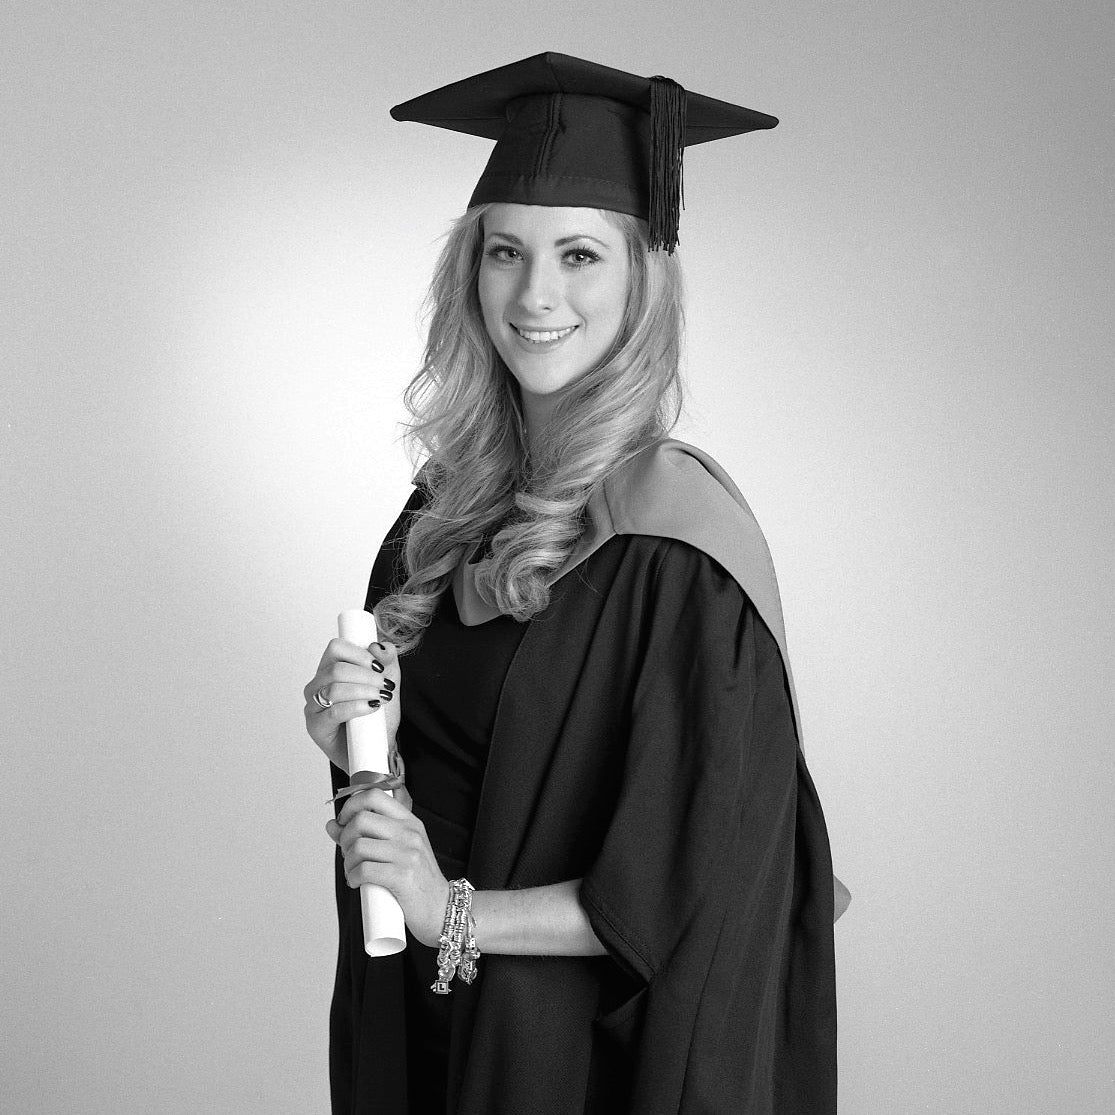 Graduation Portrait of a young woman in black and white by PHOTOGENIC Dalkey